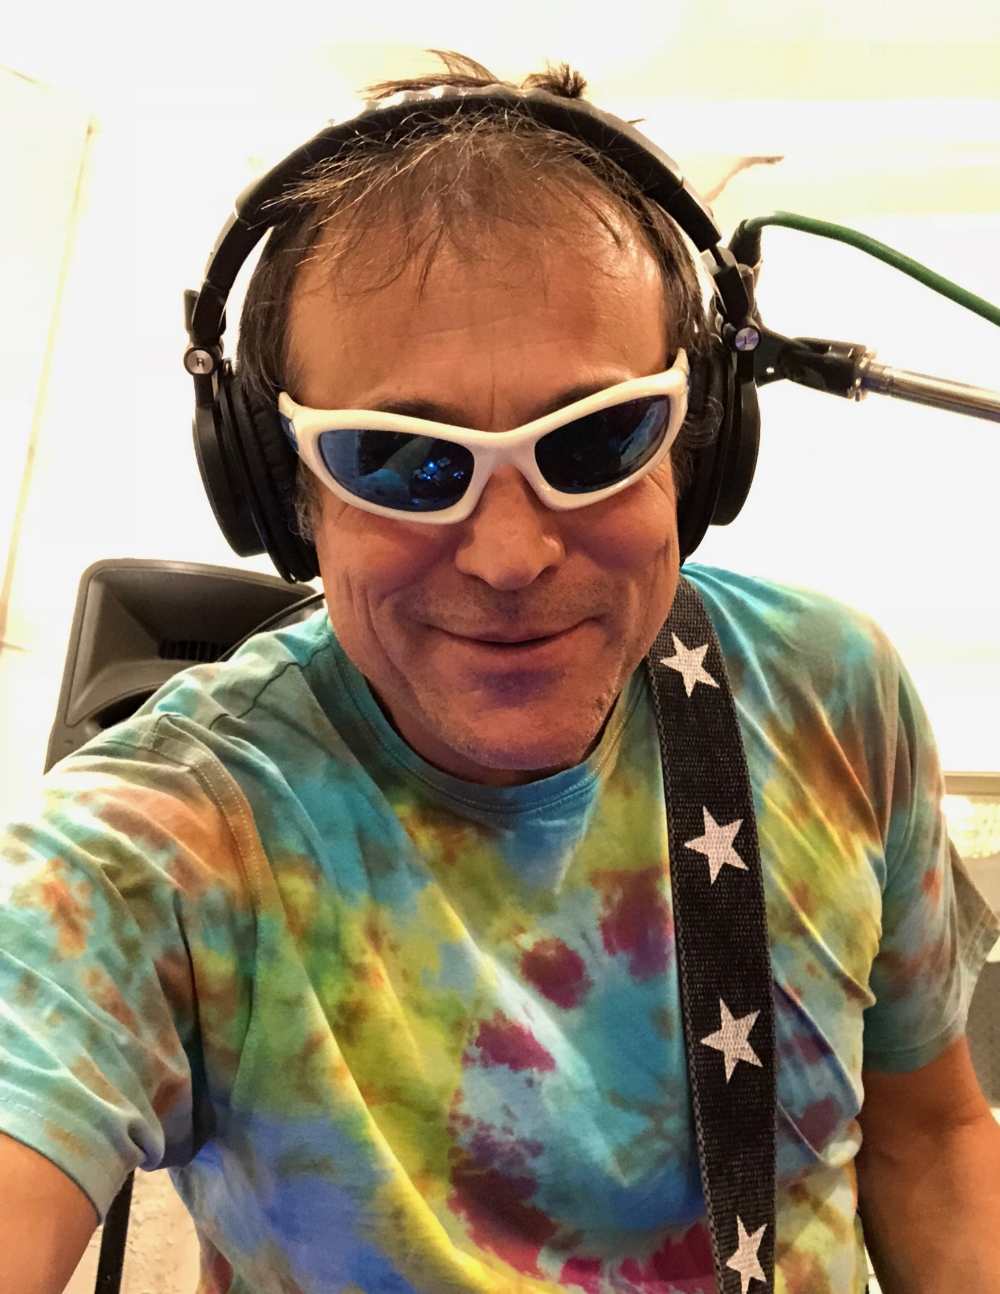 Back in the Depot Studio recording drum tracks for the 2nd album. This pic is straight from the 90s...tie dye is not dead! Uber producer Morgan Allen is once again at the controls. Here's a clip of the last song of the day, 'Tear Down'. Couldn't do too many takes of this one!